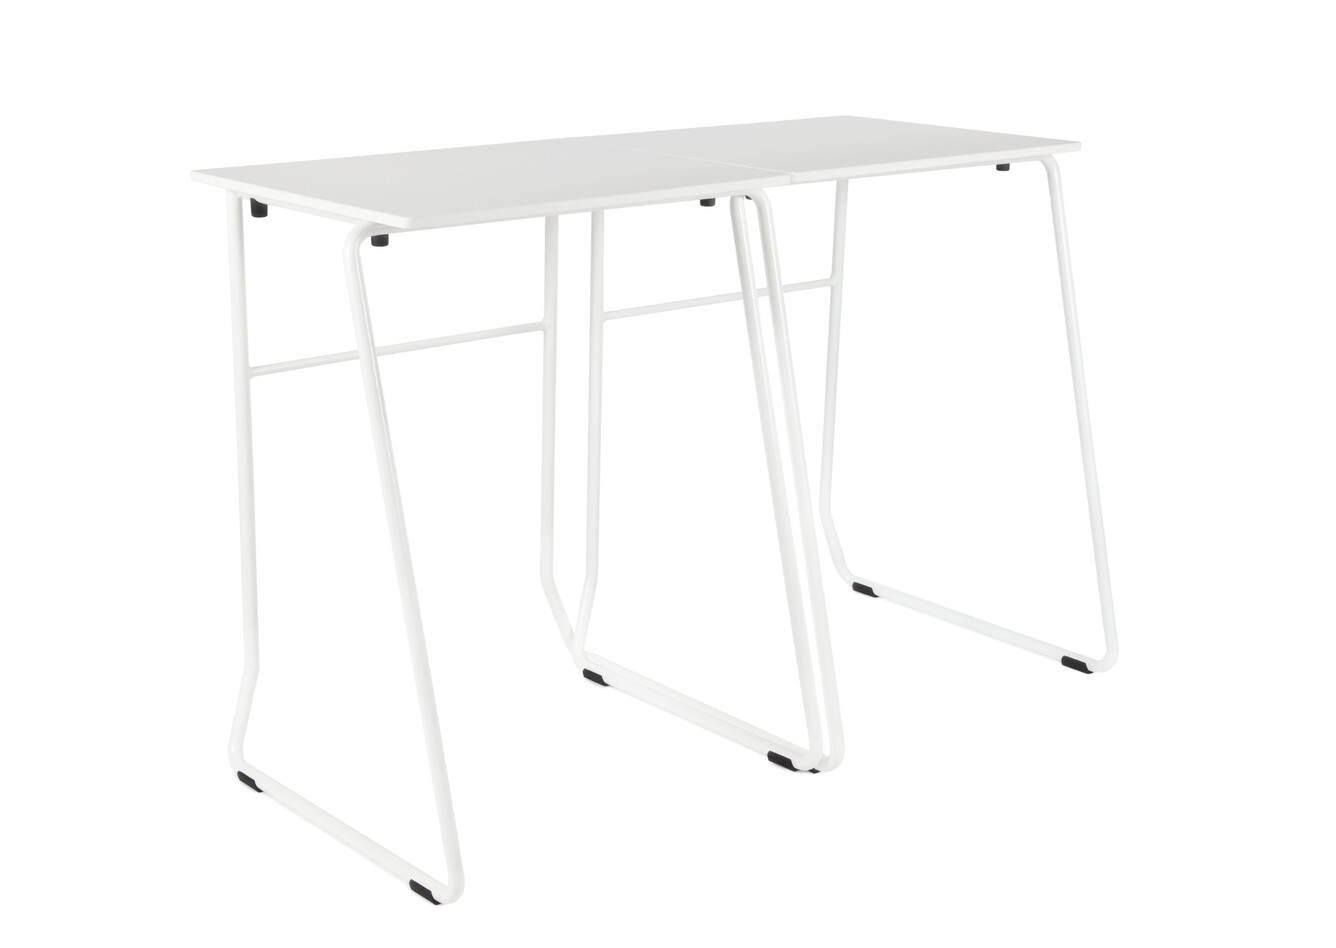 Royal Ahrend 456 seminar tables in white coupled front left view